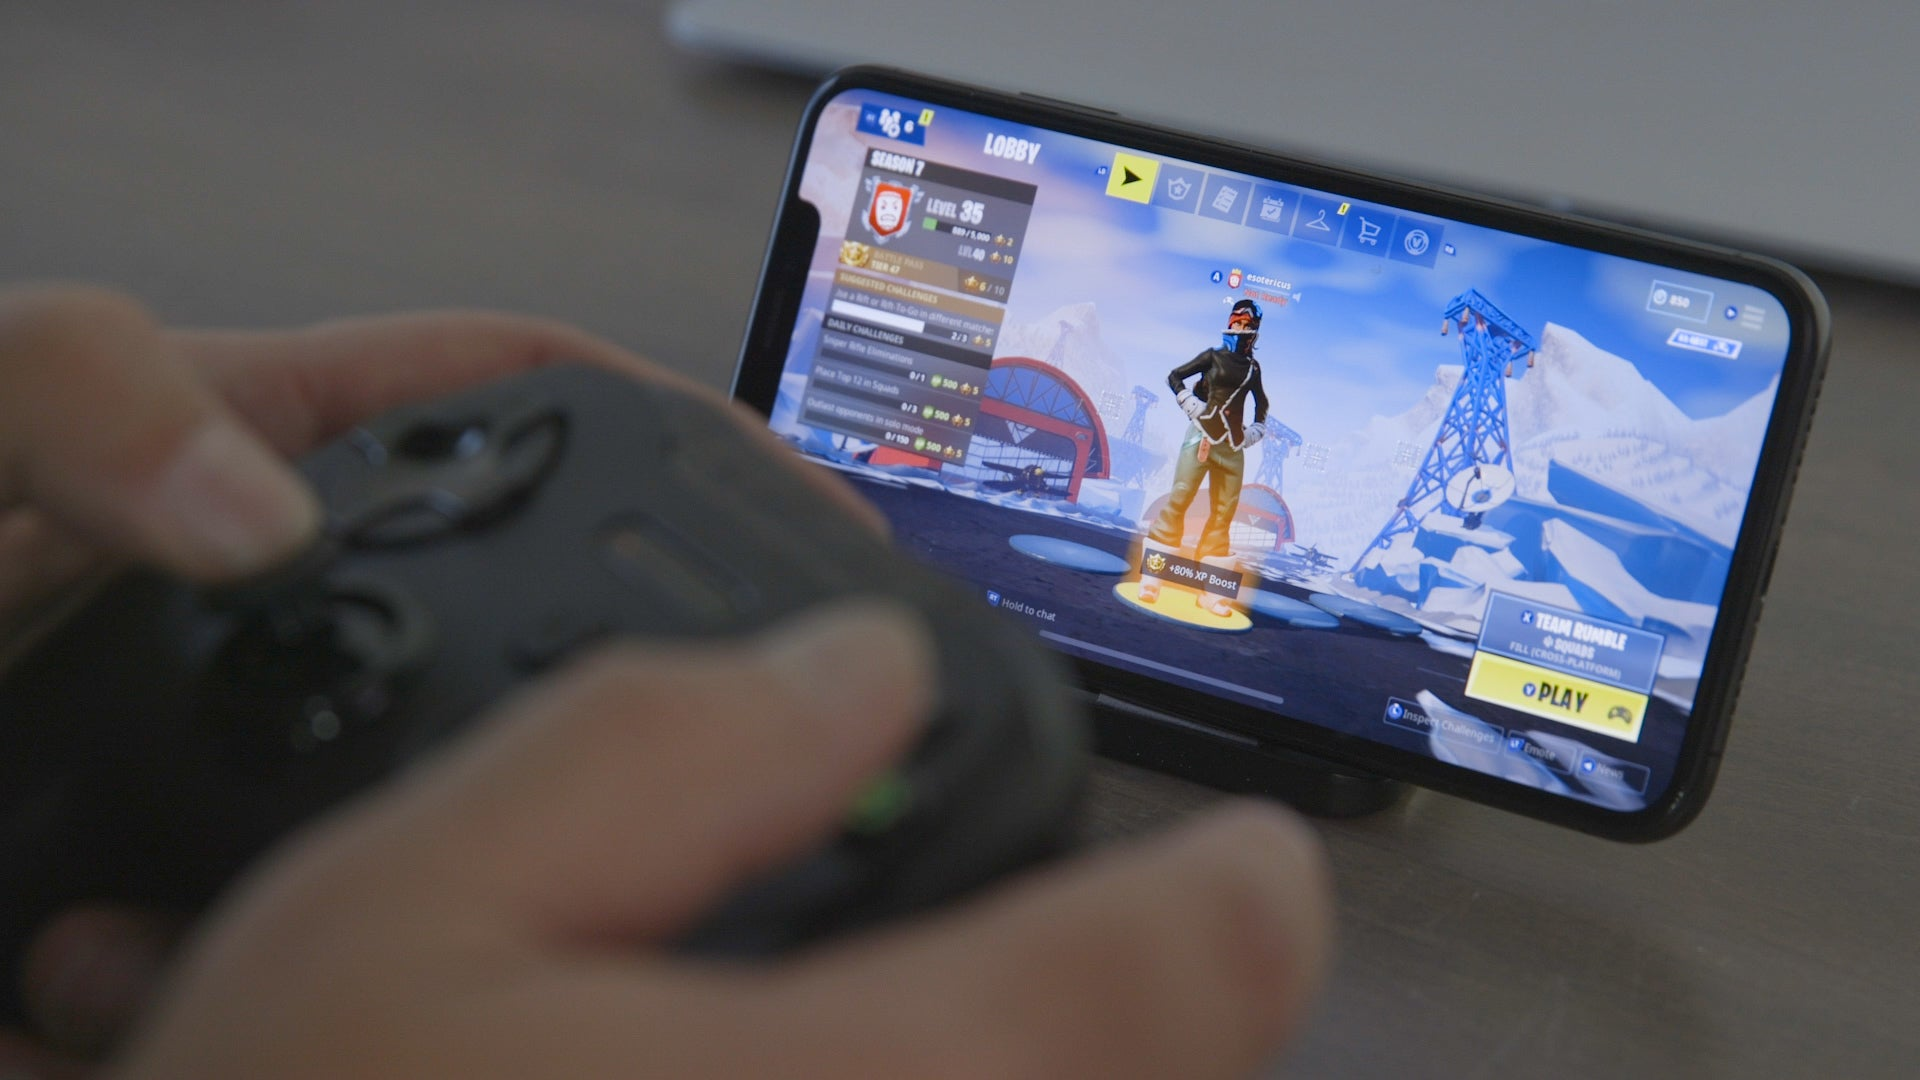 Use a controller with Fortnite on the iPhone